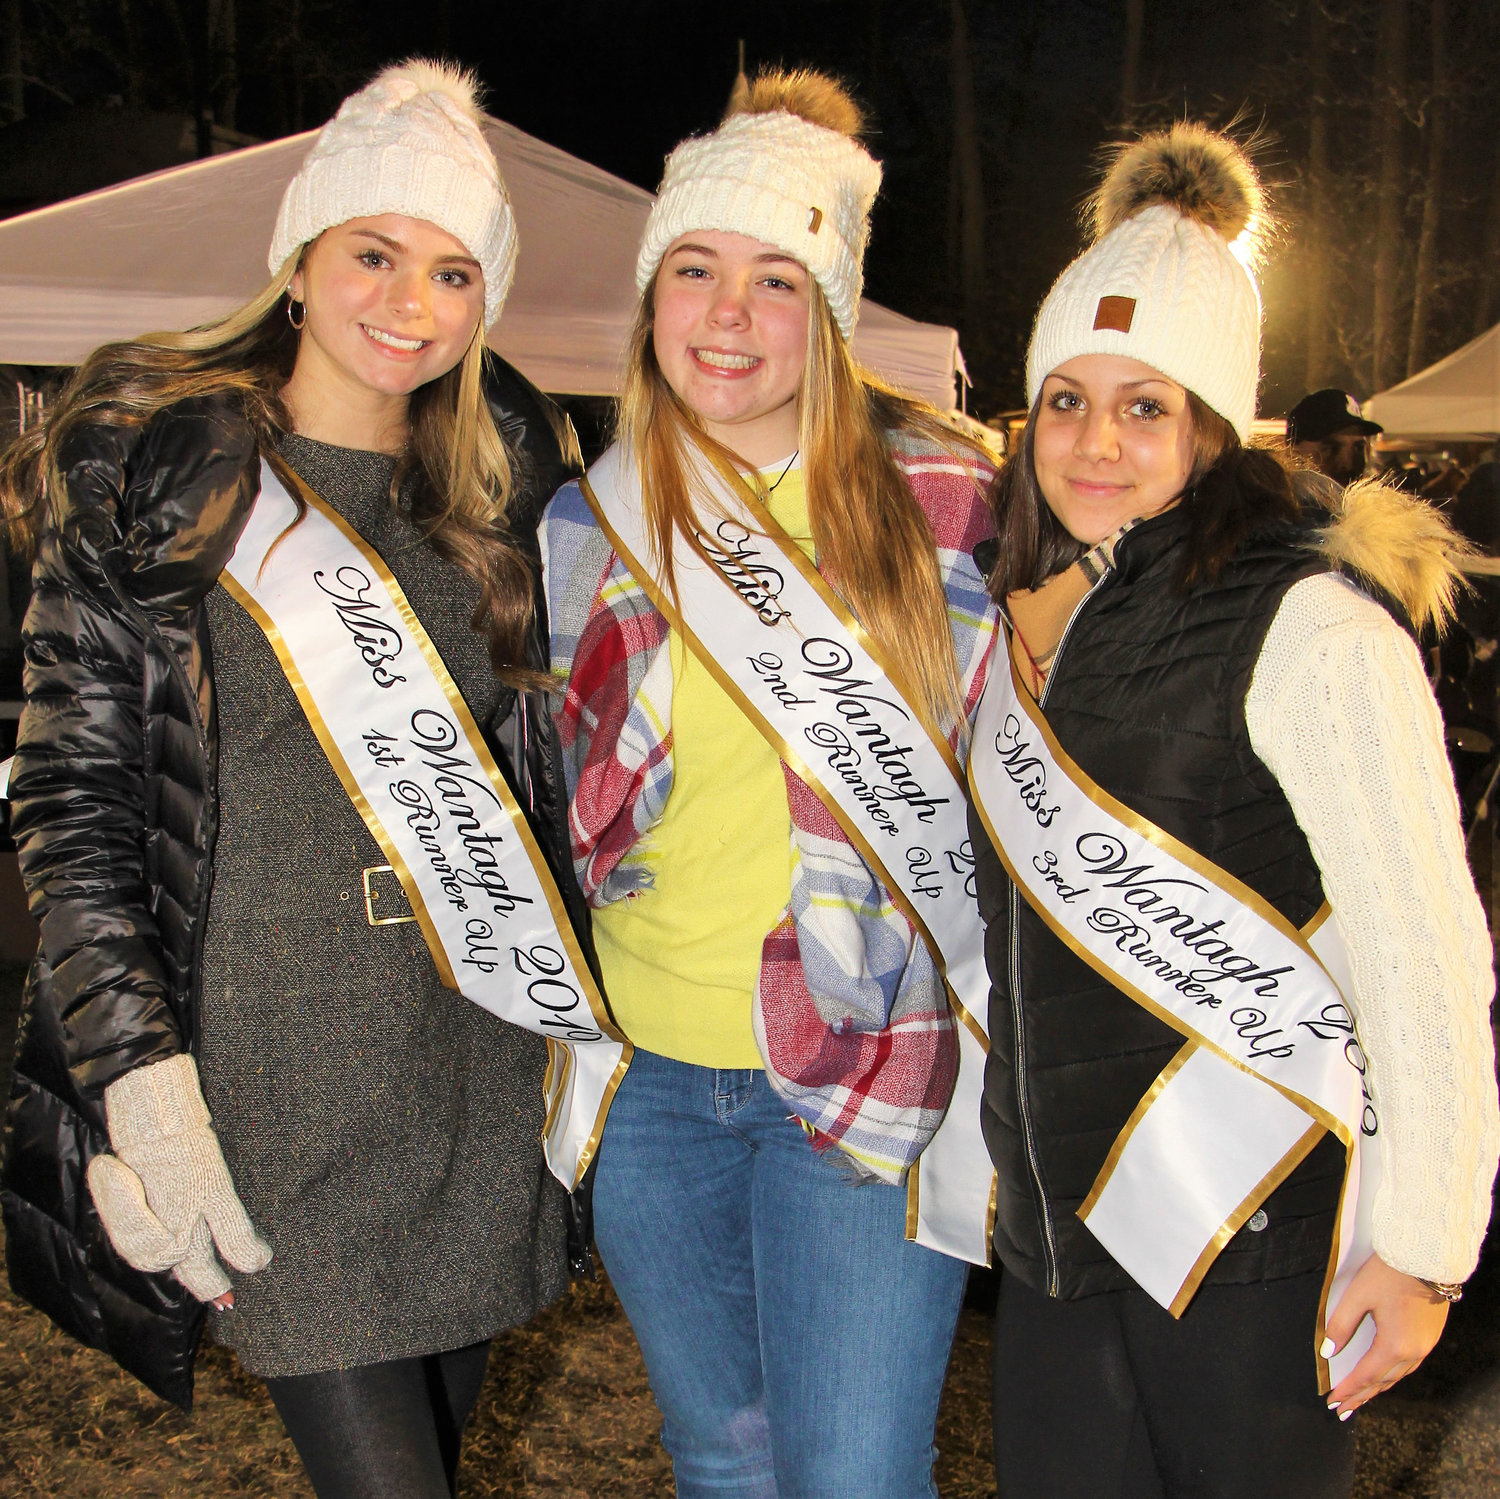 Members of the Miss Wantagh 2019 Court, far left, Grace Massari, from left, Ellen Cunnane and Angelina Maciak joined the festivities.